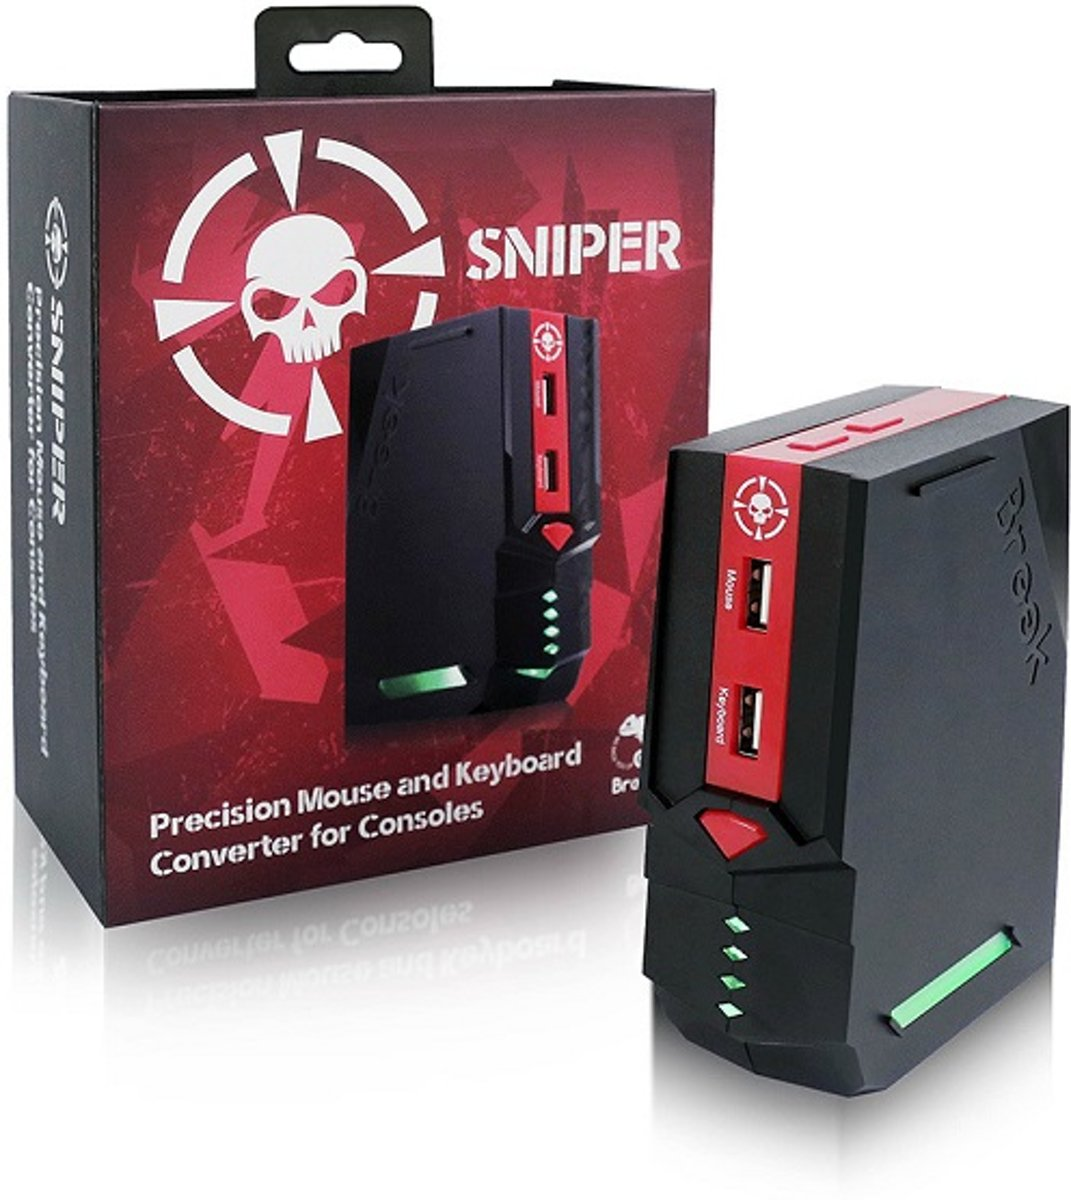 Sniper Precision Mouse & Keyboard Console Adapter Converter